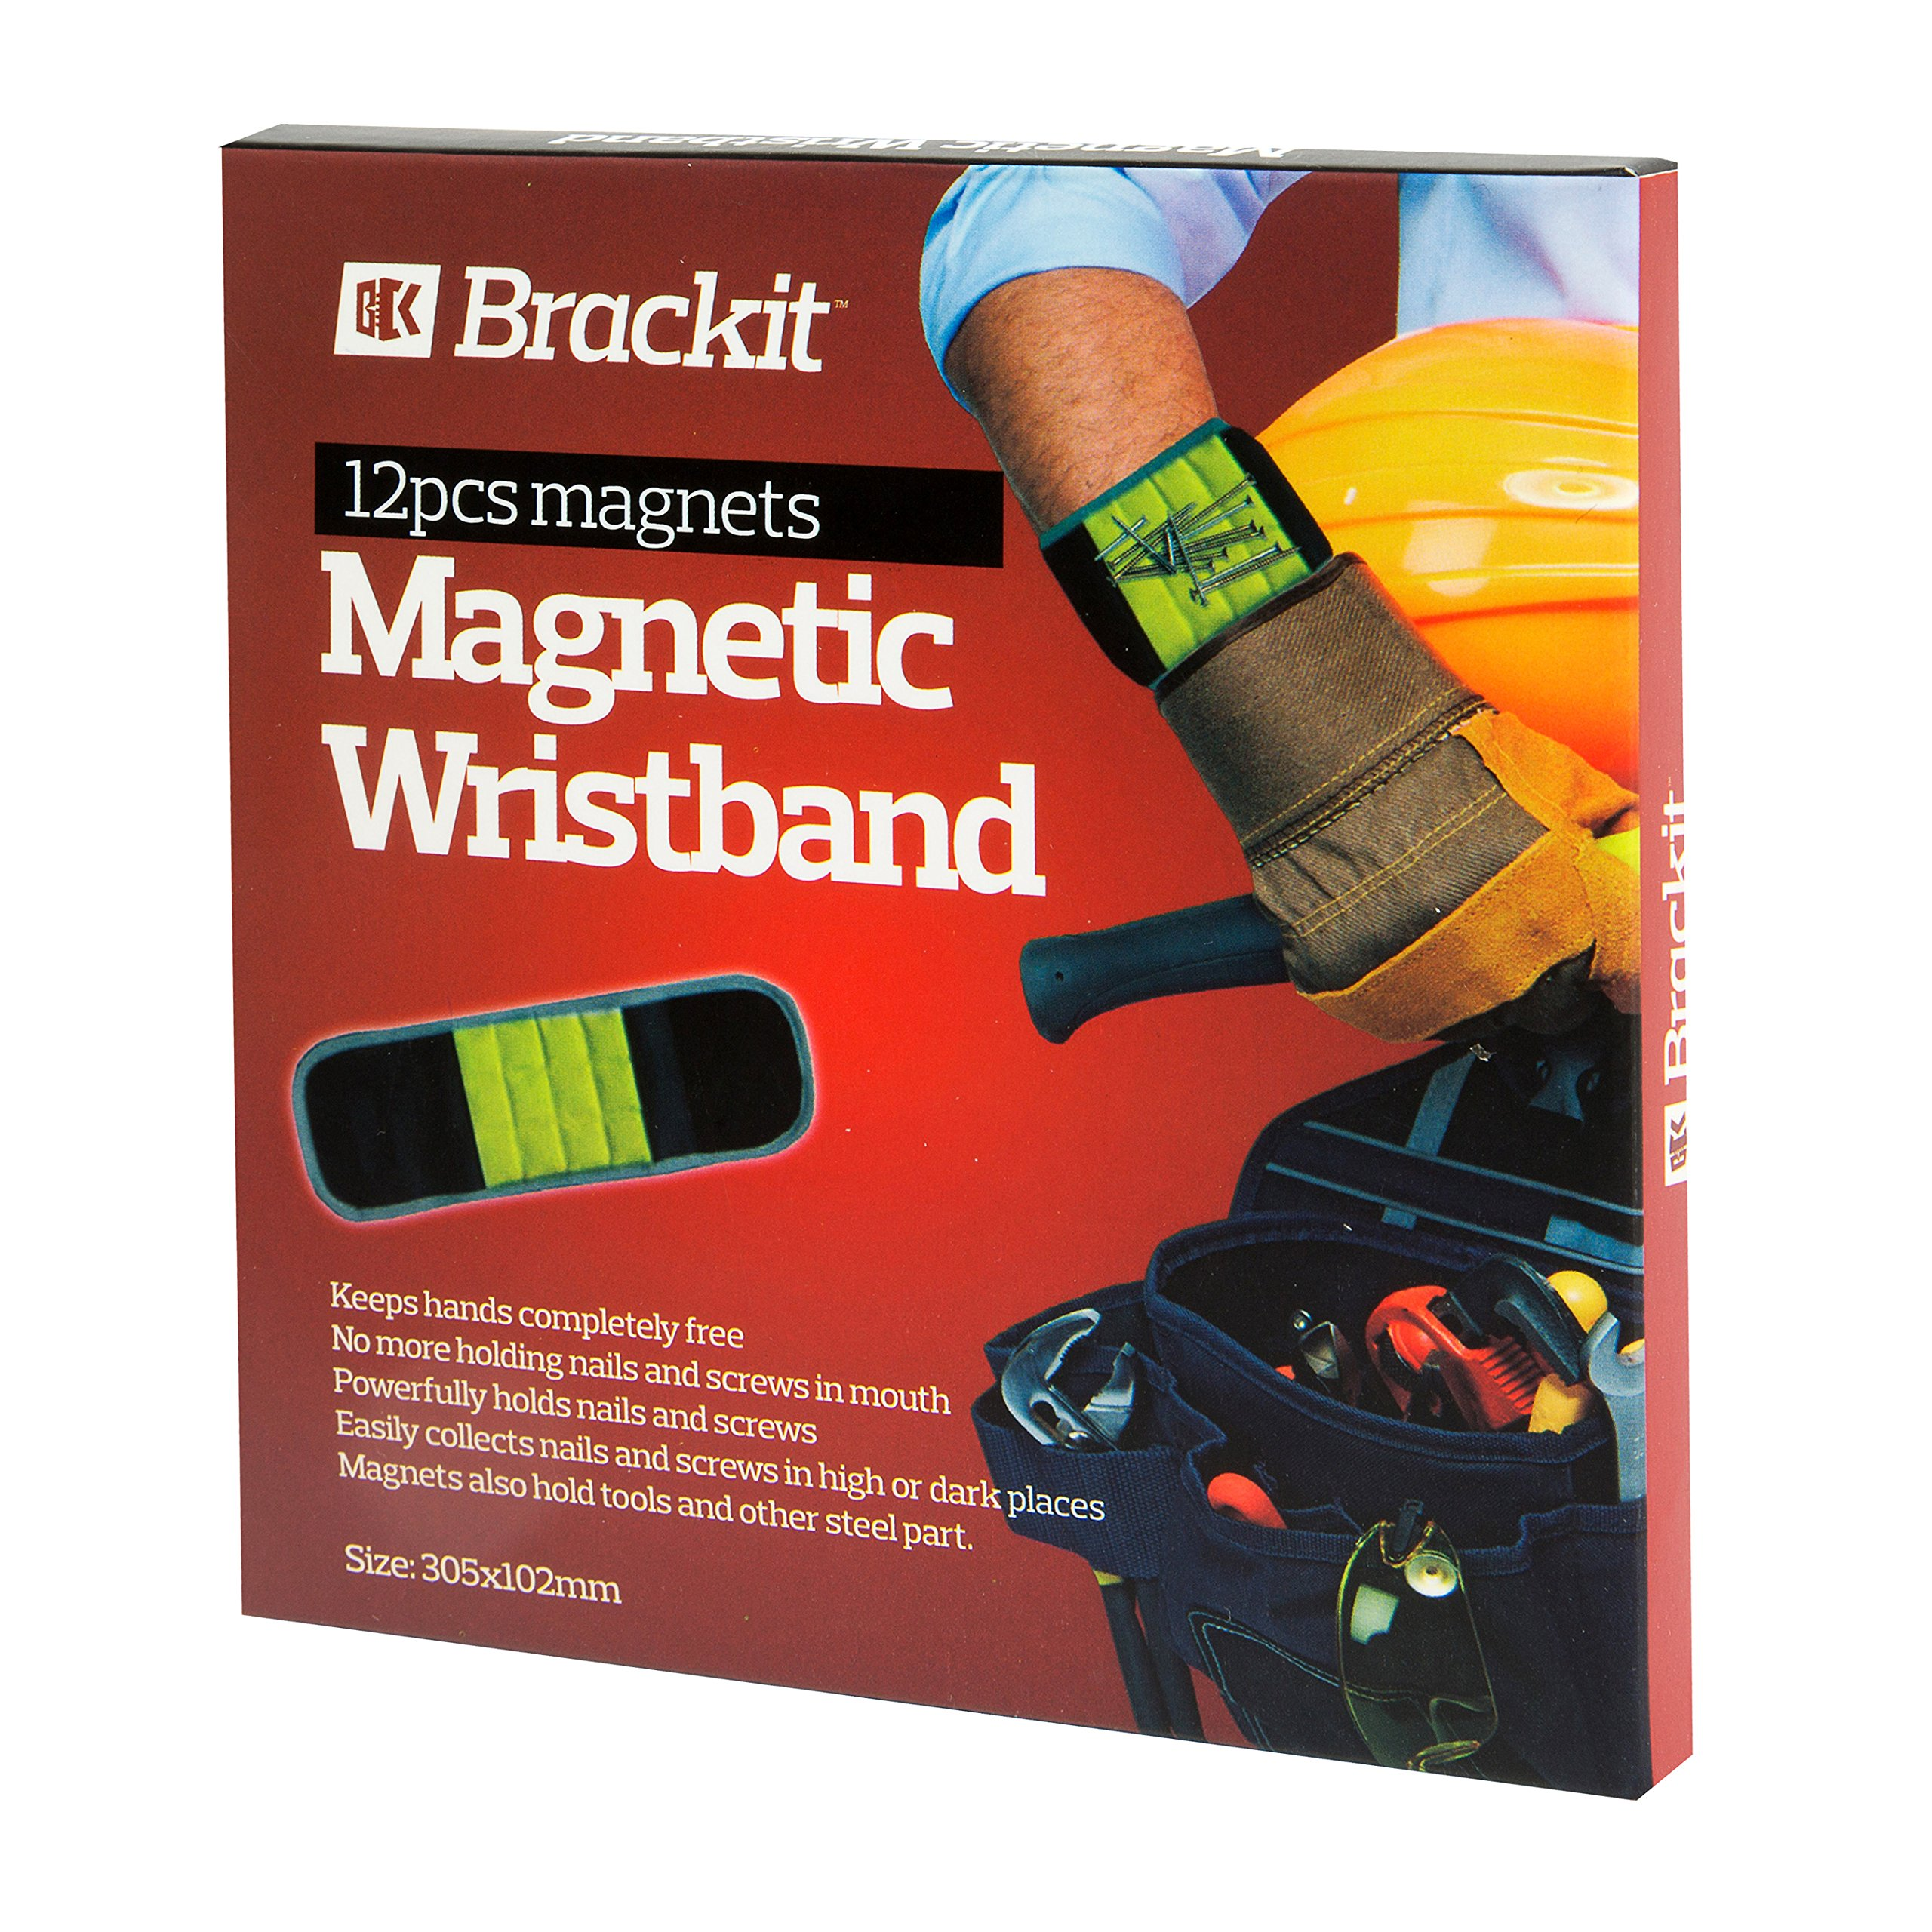 Brackit Magnetic Wristband Tool | Adjustable Magnet Wristband Powered By 12 Strong Magnets | Holds Screws, Nails, Bolts, Drill Bits & Other Metal Objects Black (Black & Yellow)